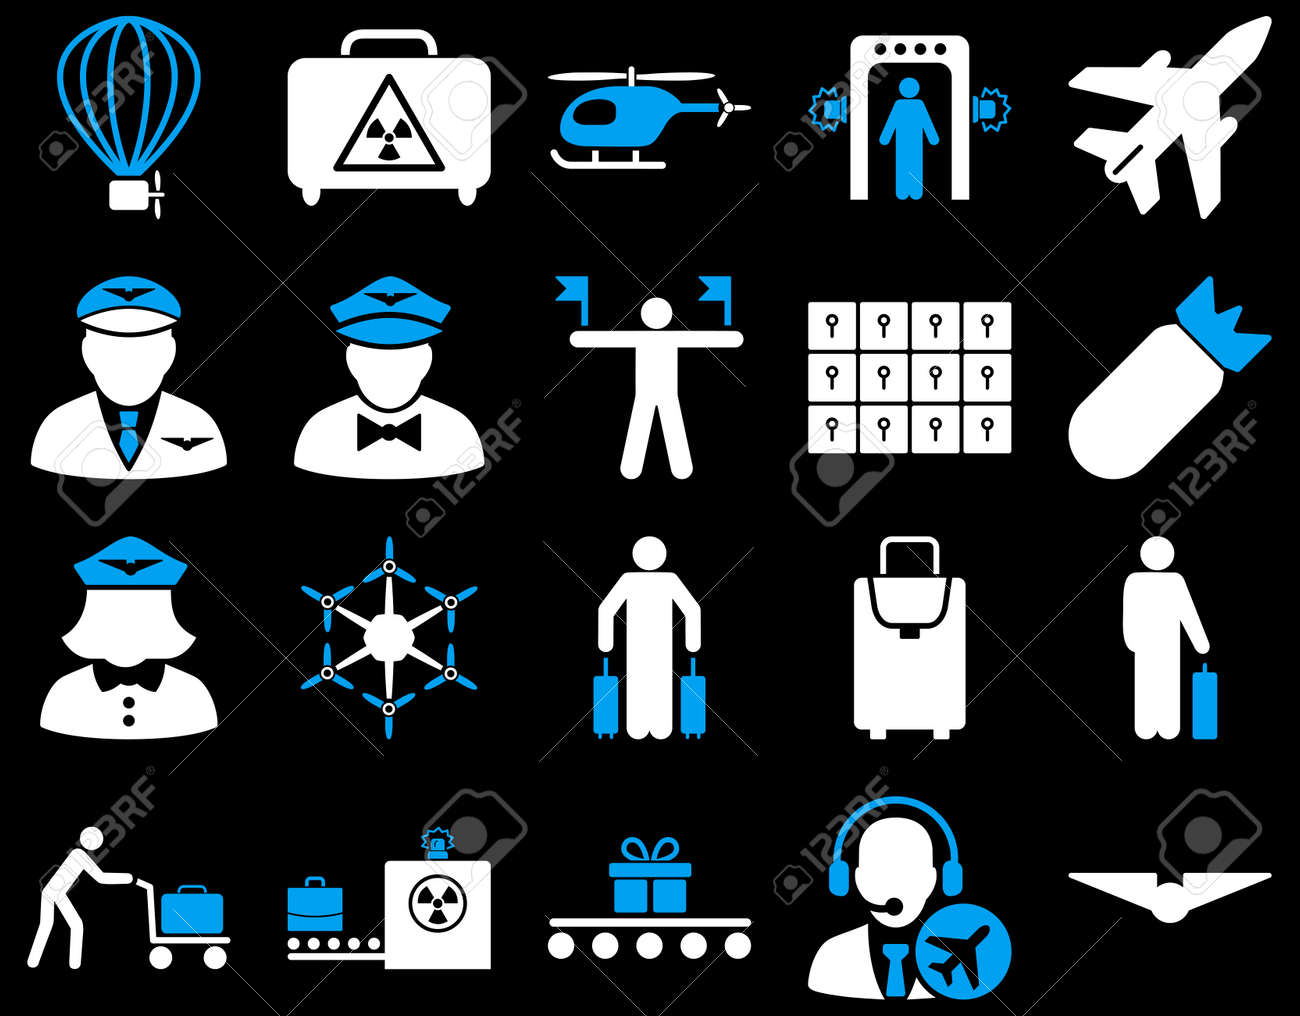 Airport Icon Set. These flat bicolor icons use blue and white colors. Vector images are isolated on a black background. - 42490402